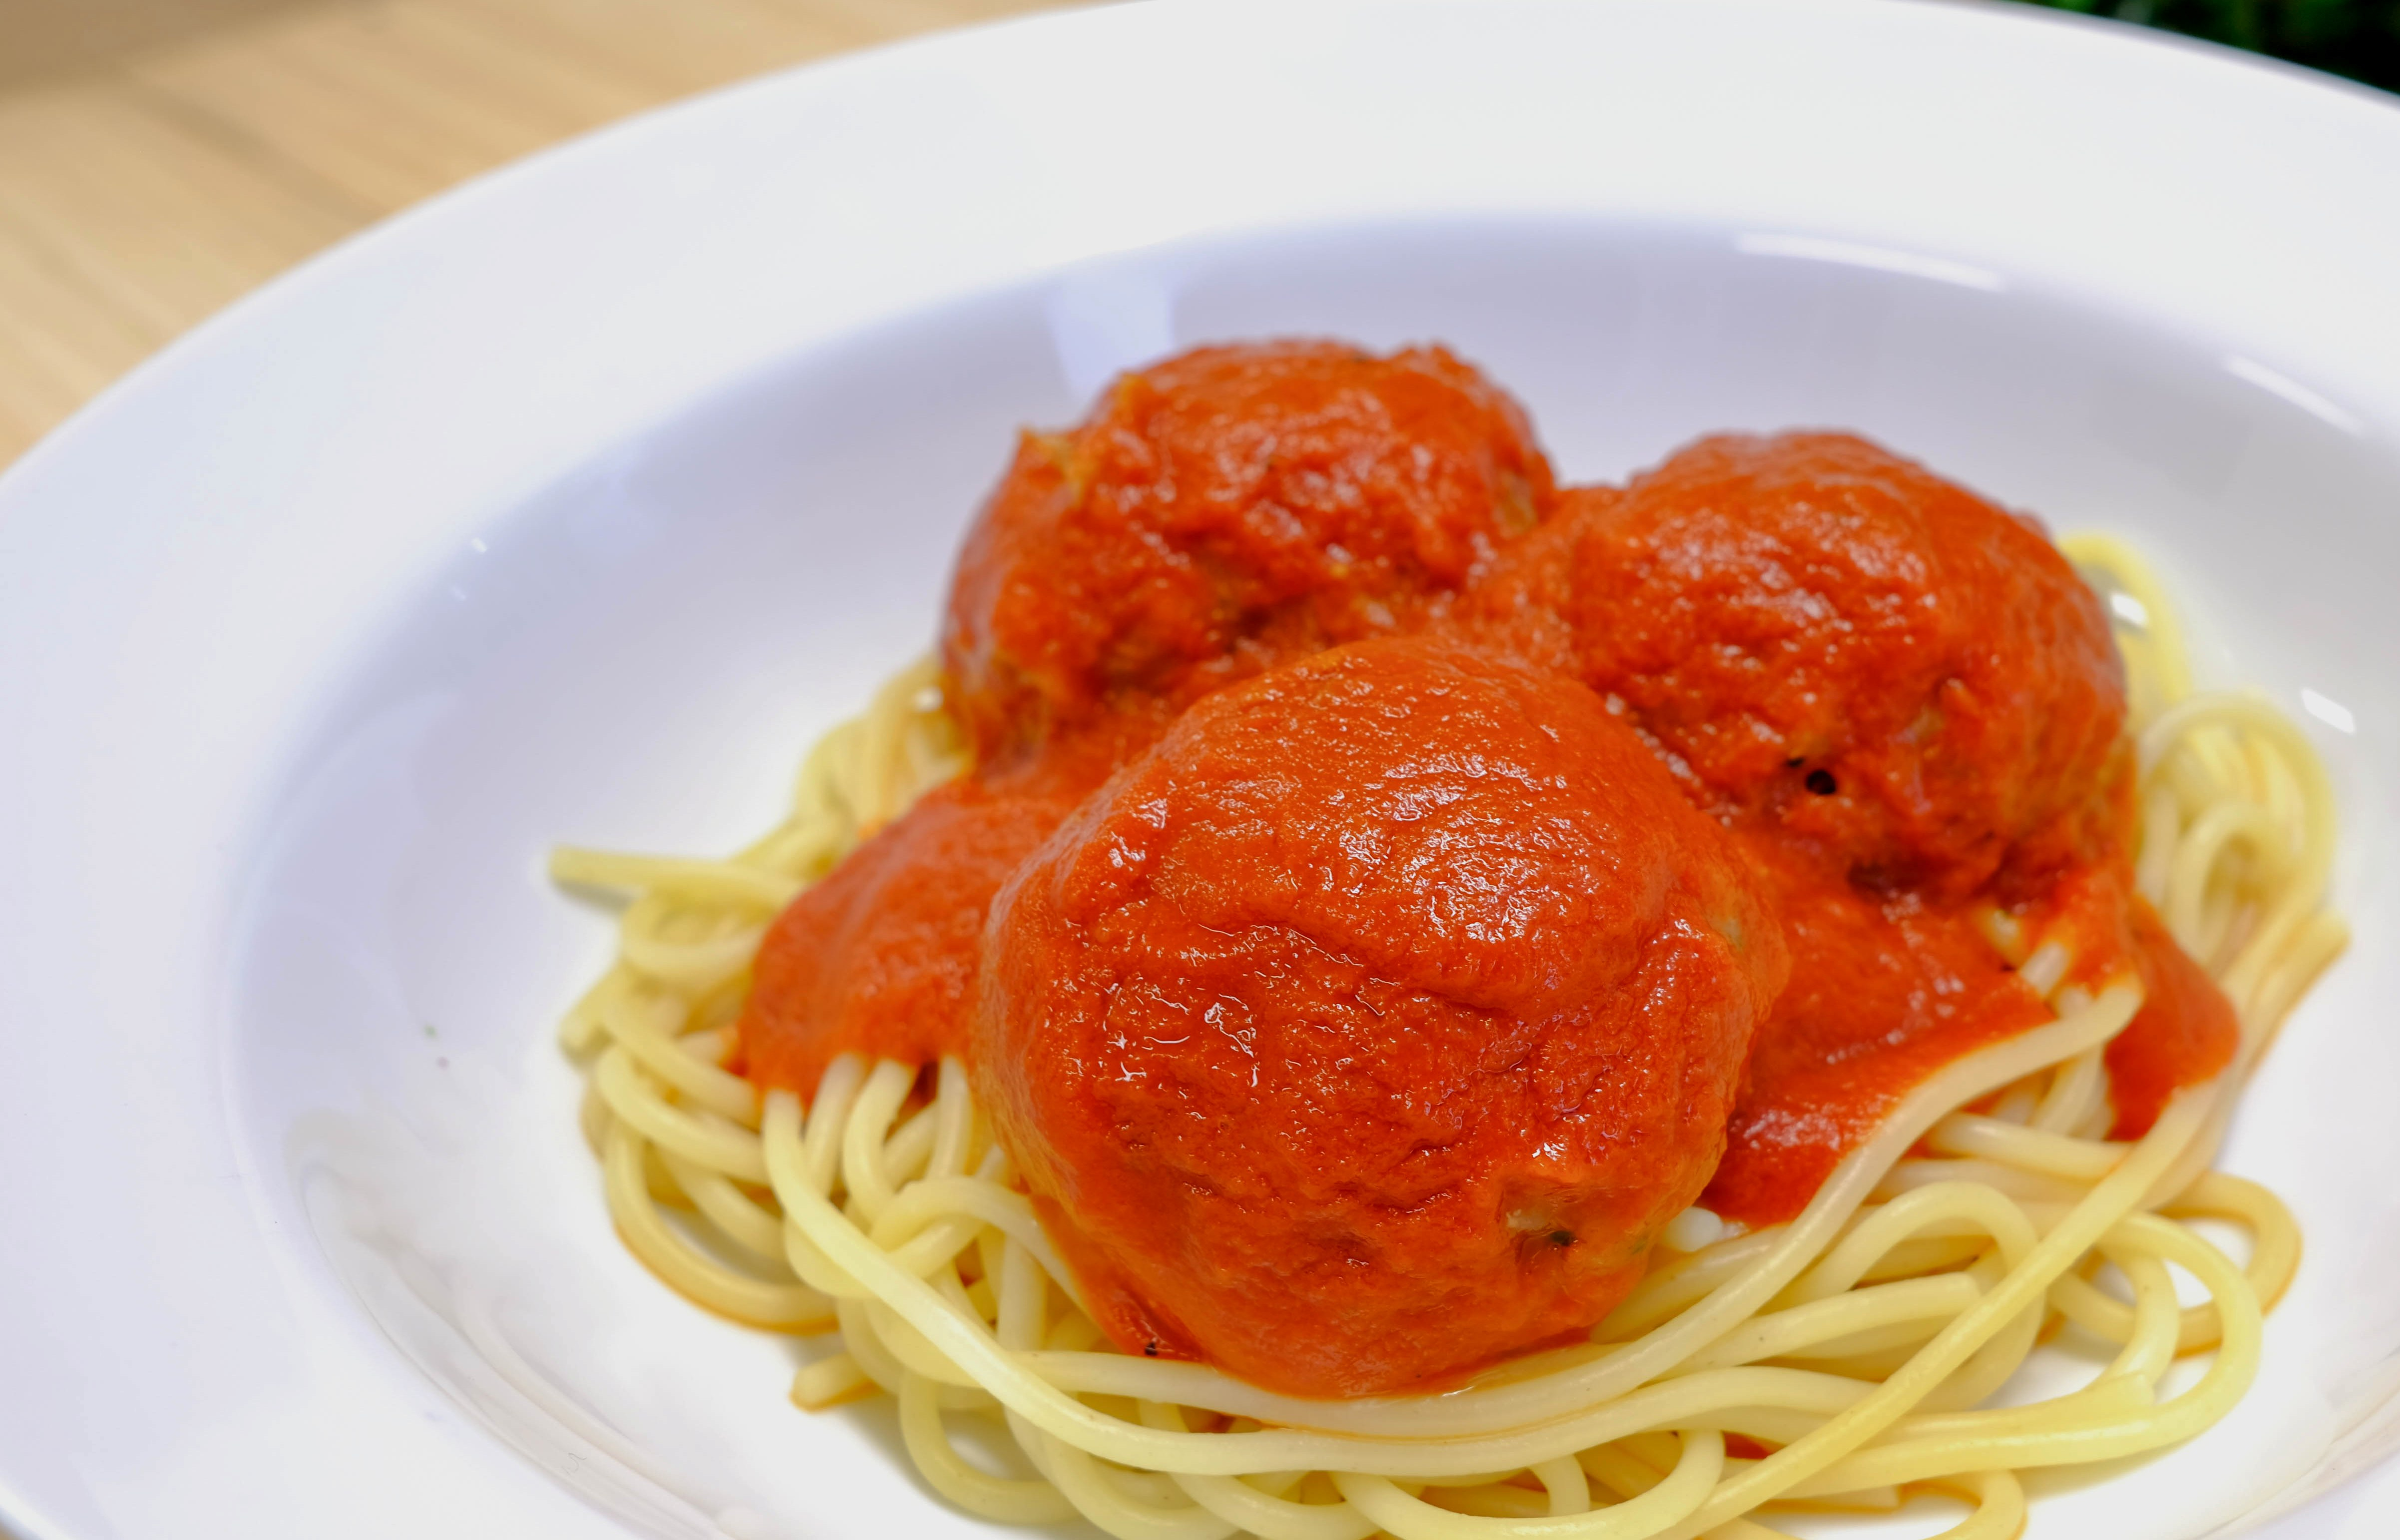 2.Pasta with OmMimeat Meatball